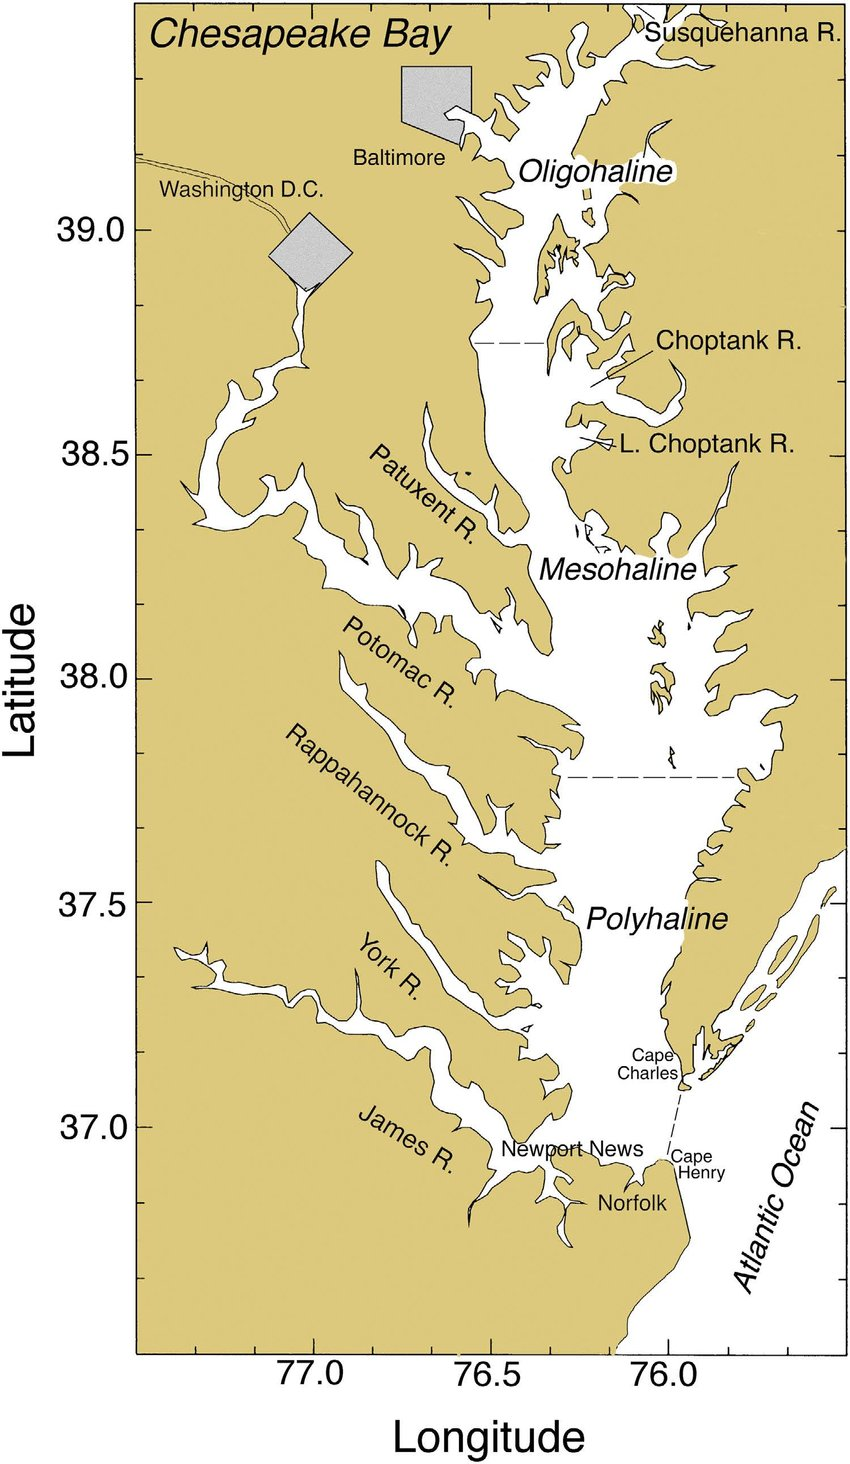 medium resolution of chesapeake bay showing major rivers cities salinity zones and sampling stations for pigments